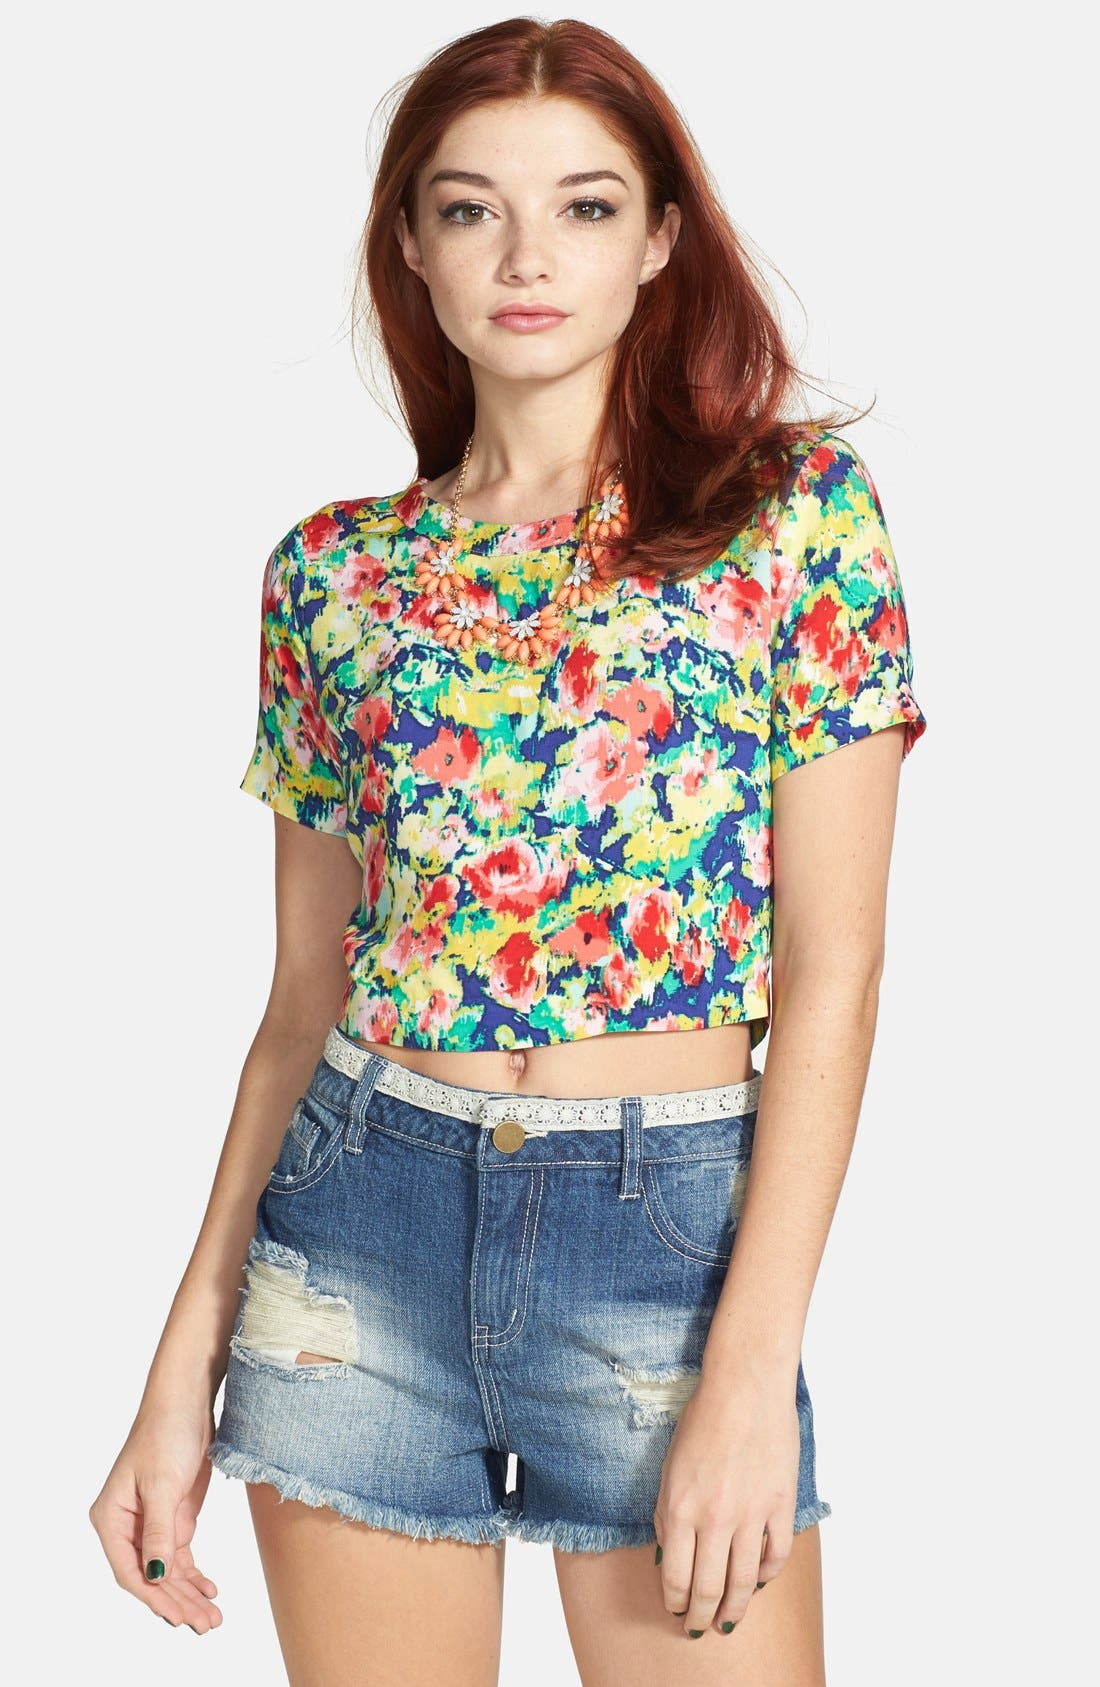 Alternate Image 1 Selected - Socialite Back Button Print Crop Top (Juniors) (Online Only)